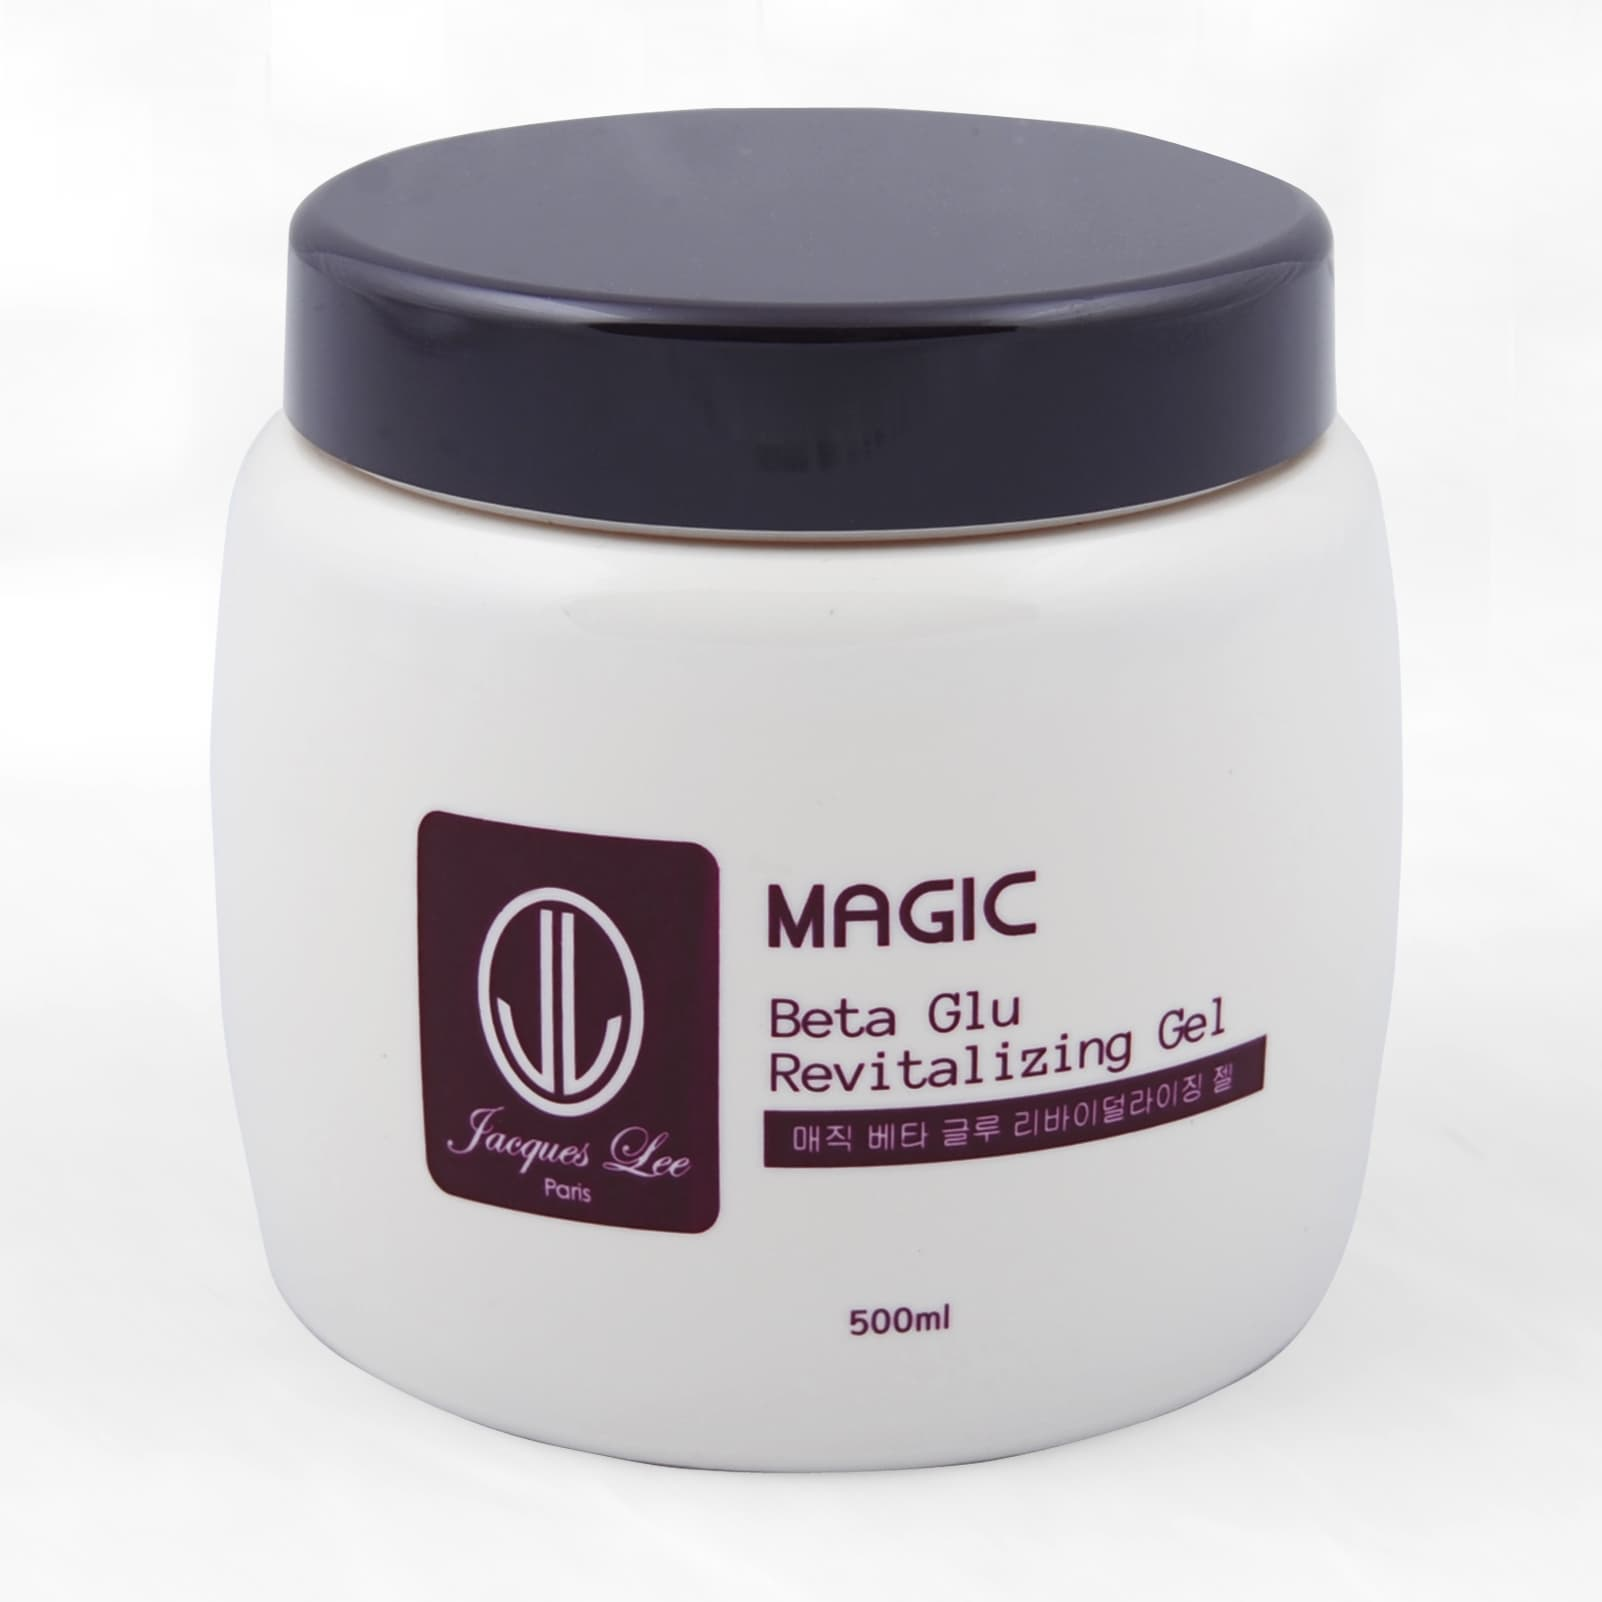 Amicell Magic Beta Glu Revitalizing Gel 500ml